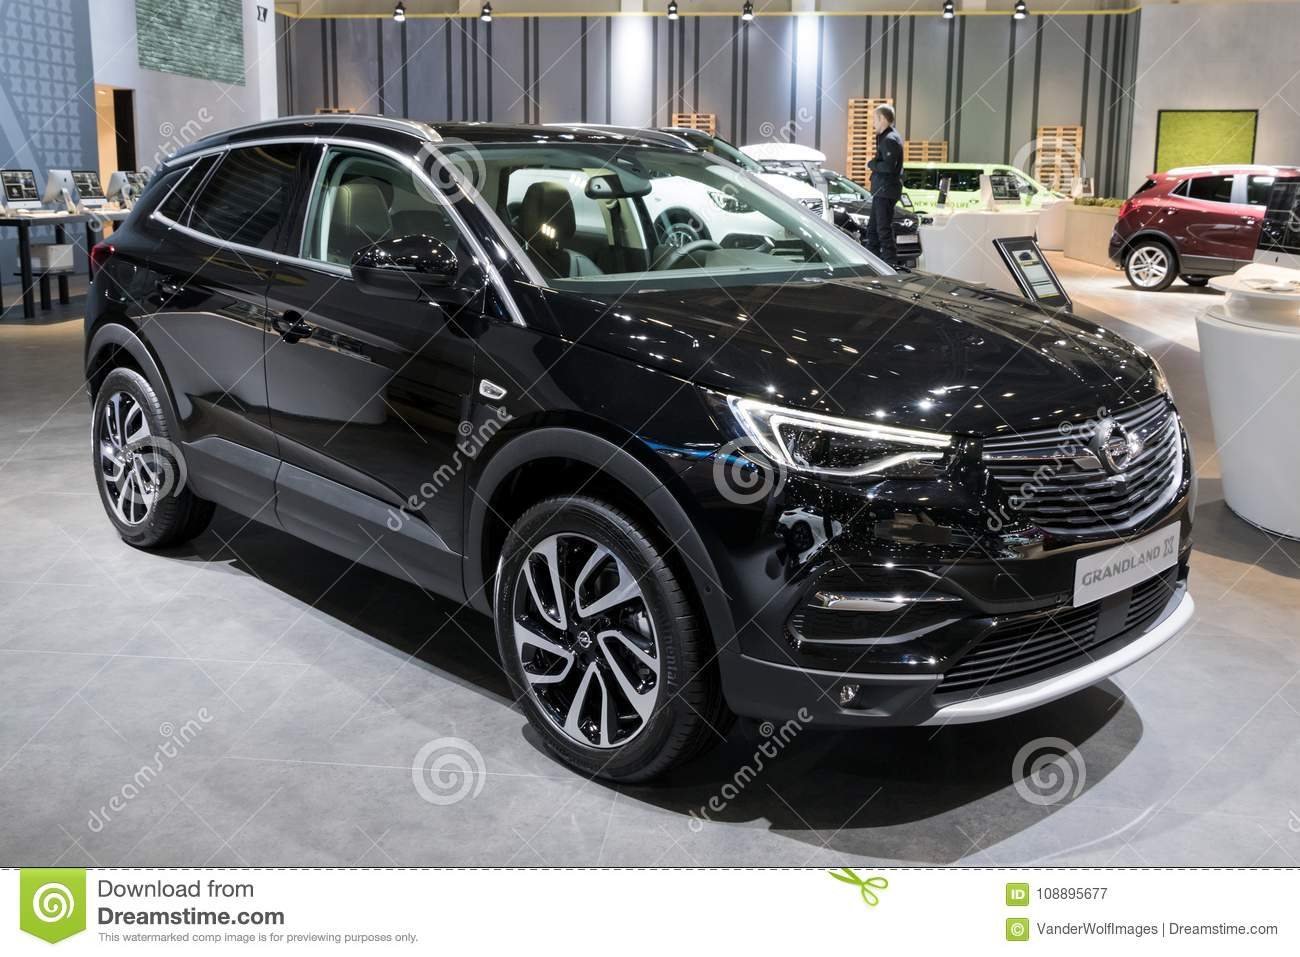 new 2018 opel grandland x suv car editorial photography image of auto model 108895677. Black Bedroom Furniture Sets. Home Design Ideas